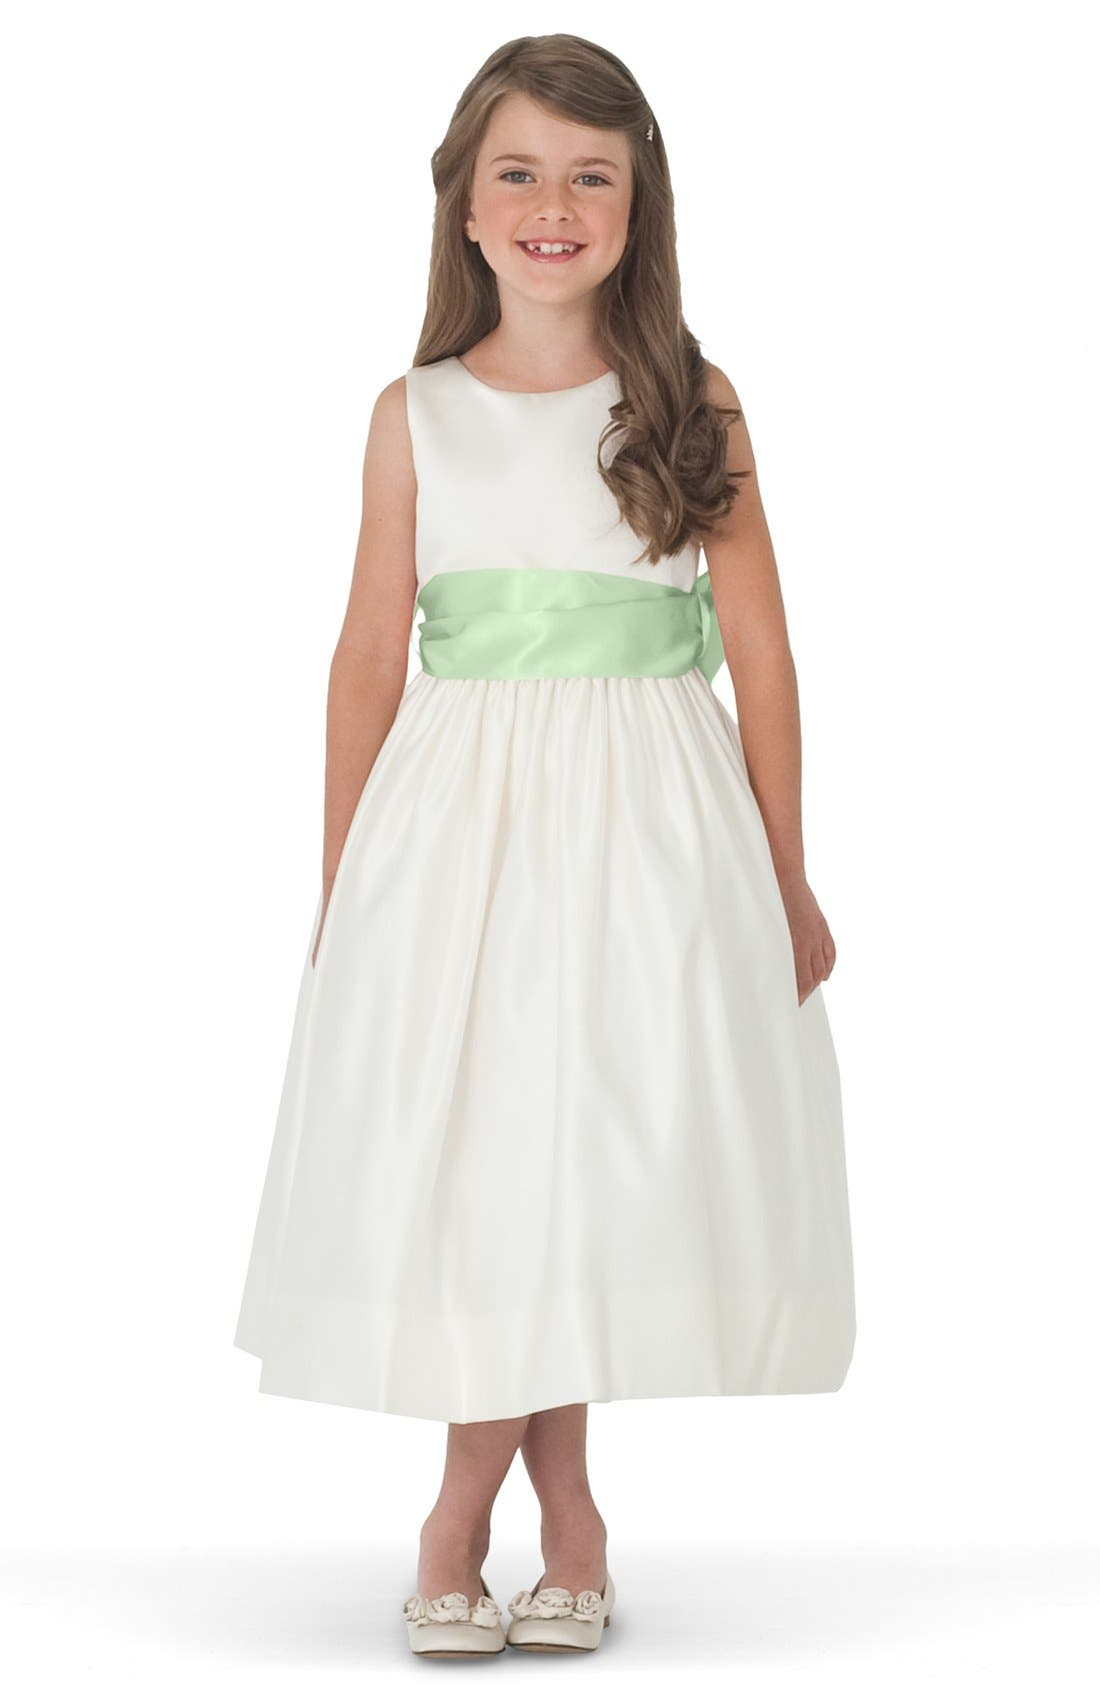 Main Image - Us Angels Sleeveless Satin Dress with Contrast Sash (Toddler Girls, Little Girls & Big Girls)